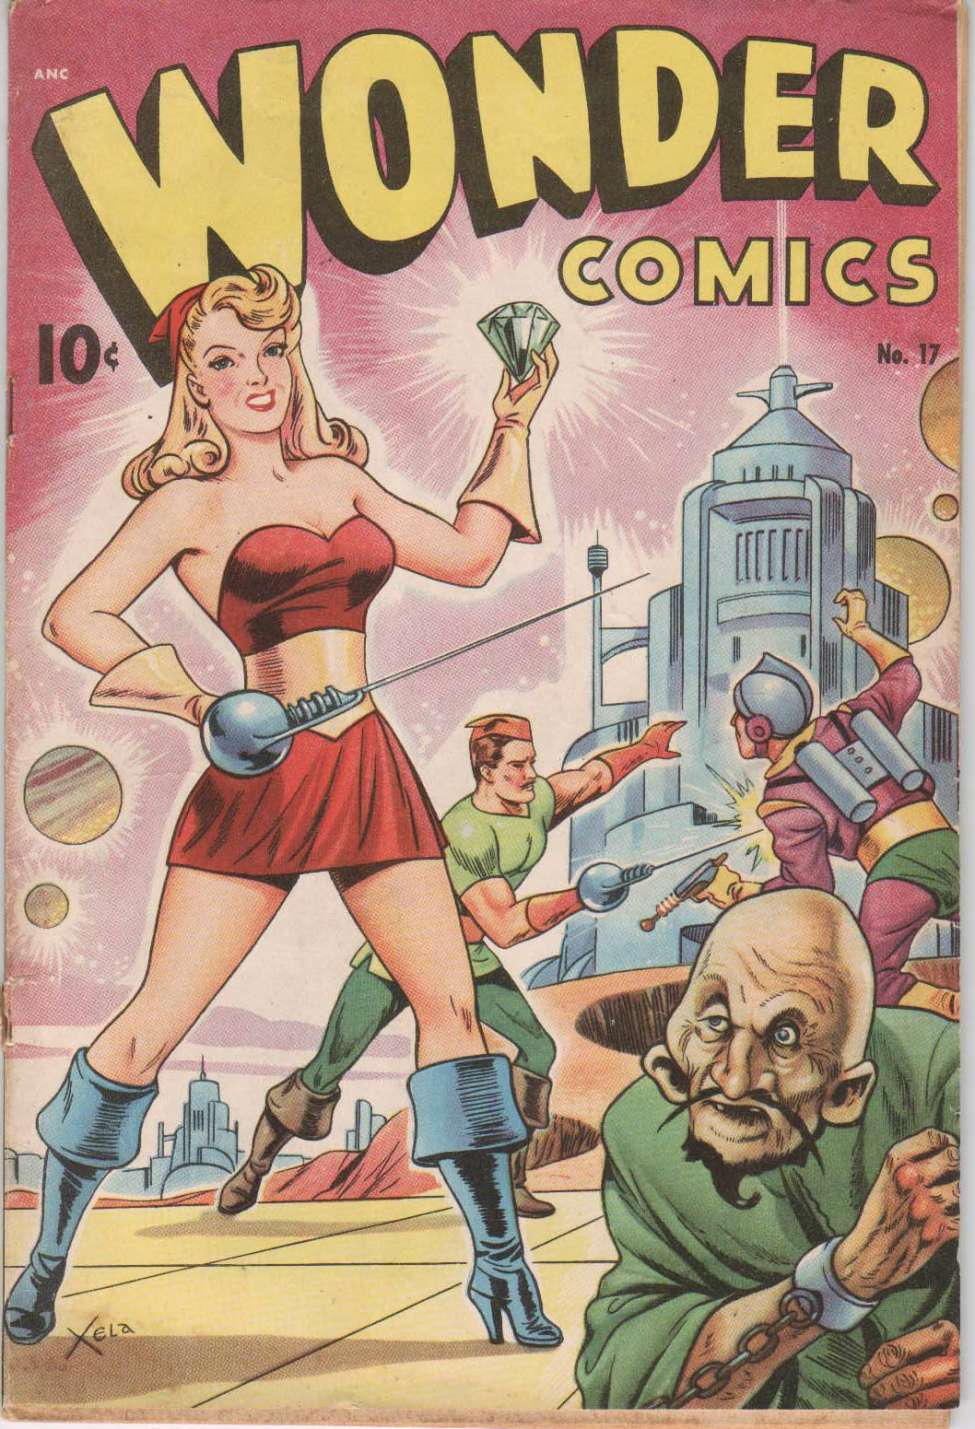 Wonder Comics #17, Pines